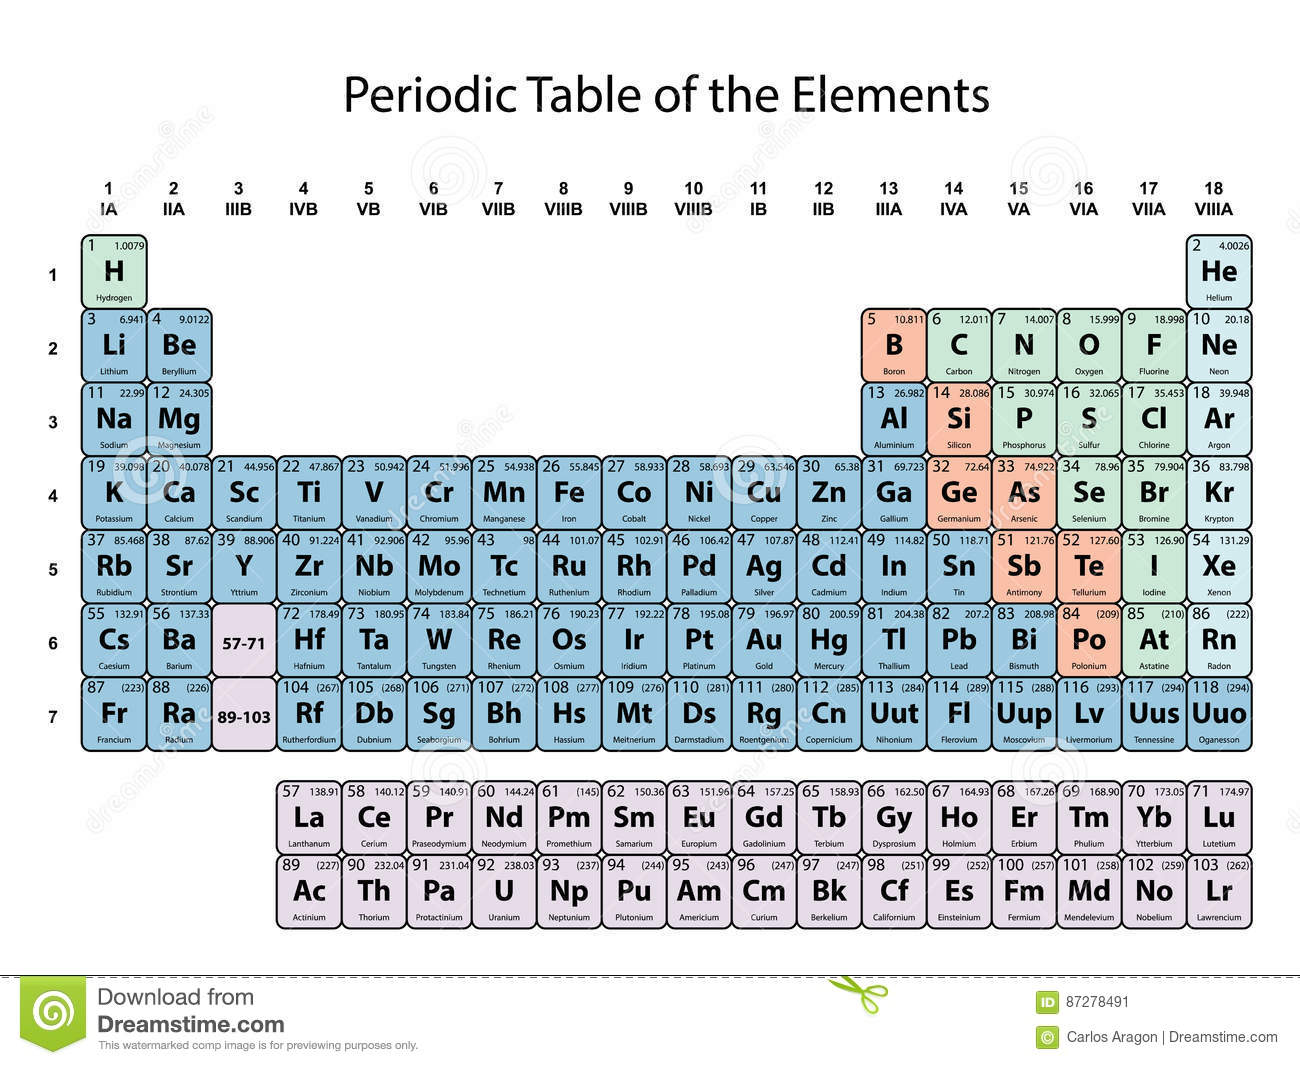 Periodic table of the elements with atomic number symbol and periodic table of the elements with atomic number symbol and weight with color delimitation on white background buycottarizona